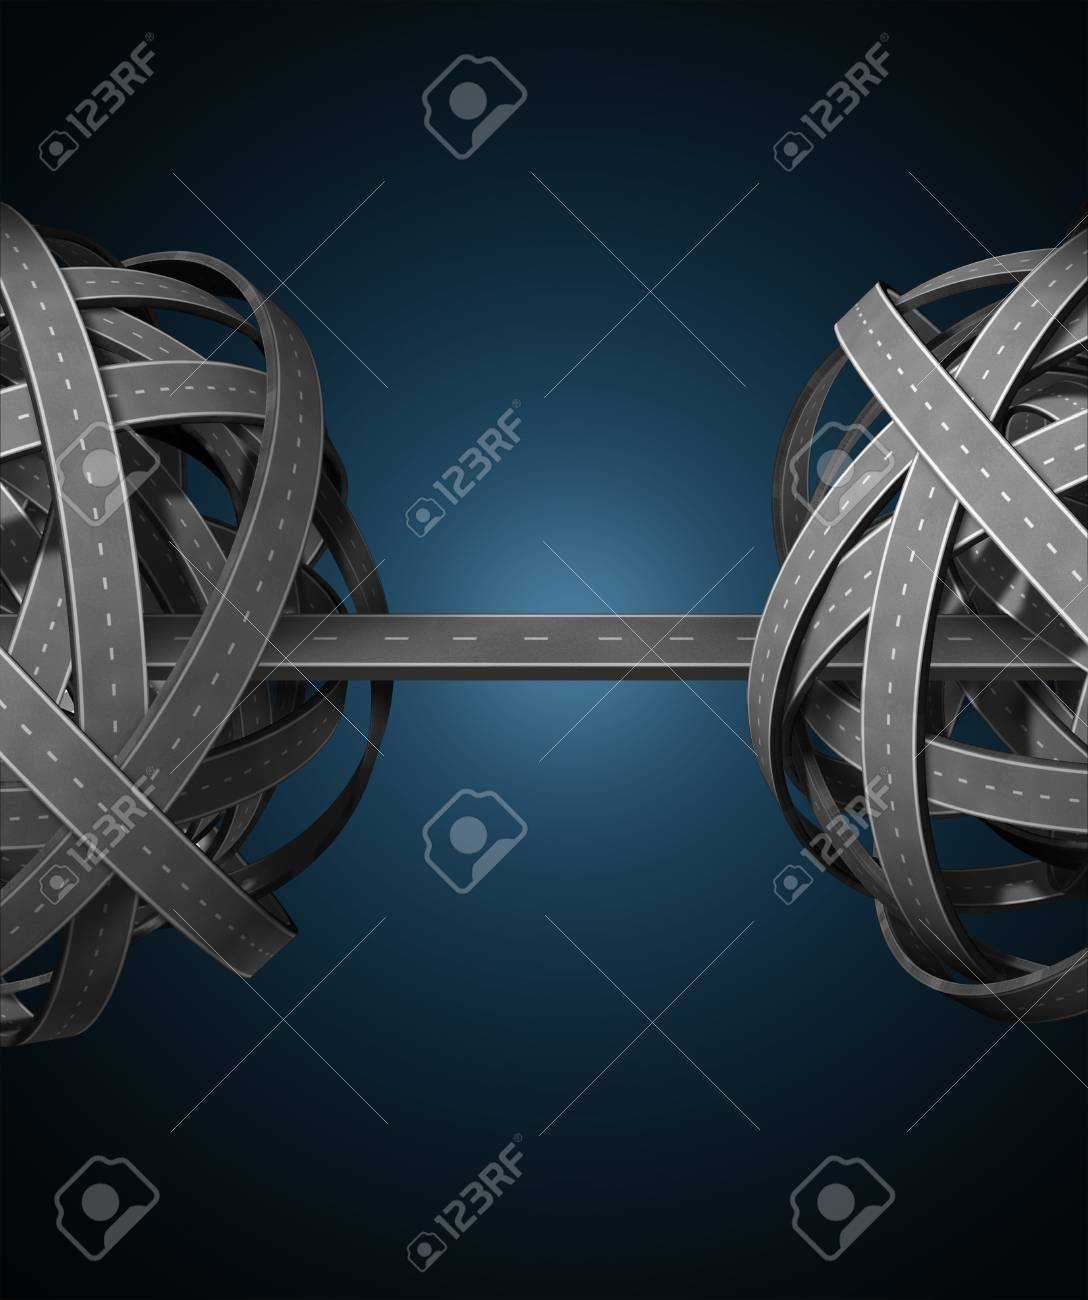 Network management with two confused tangled groups of highways and roads connected by a single path connecting the chaos and providing a simple successful business solution on black Stock Photo - 13876616